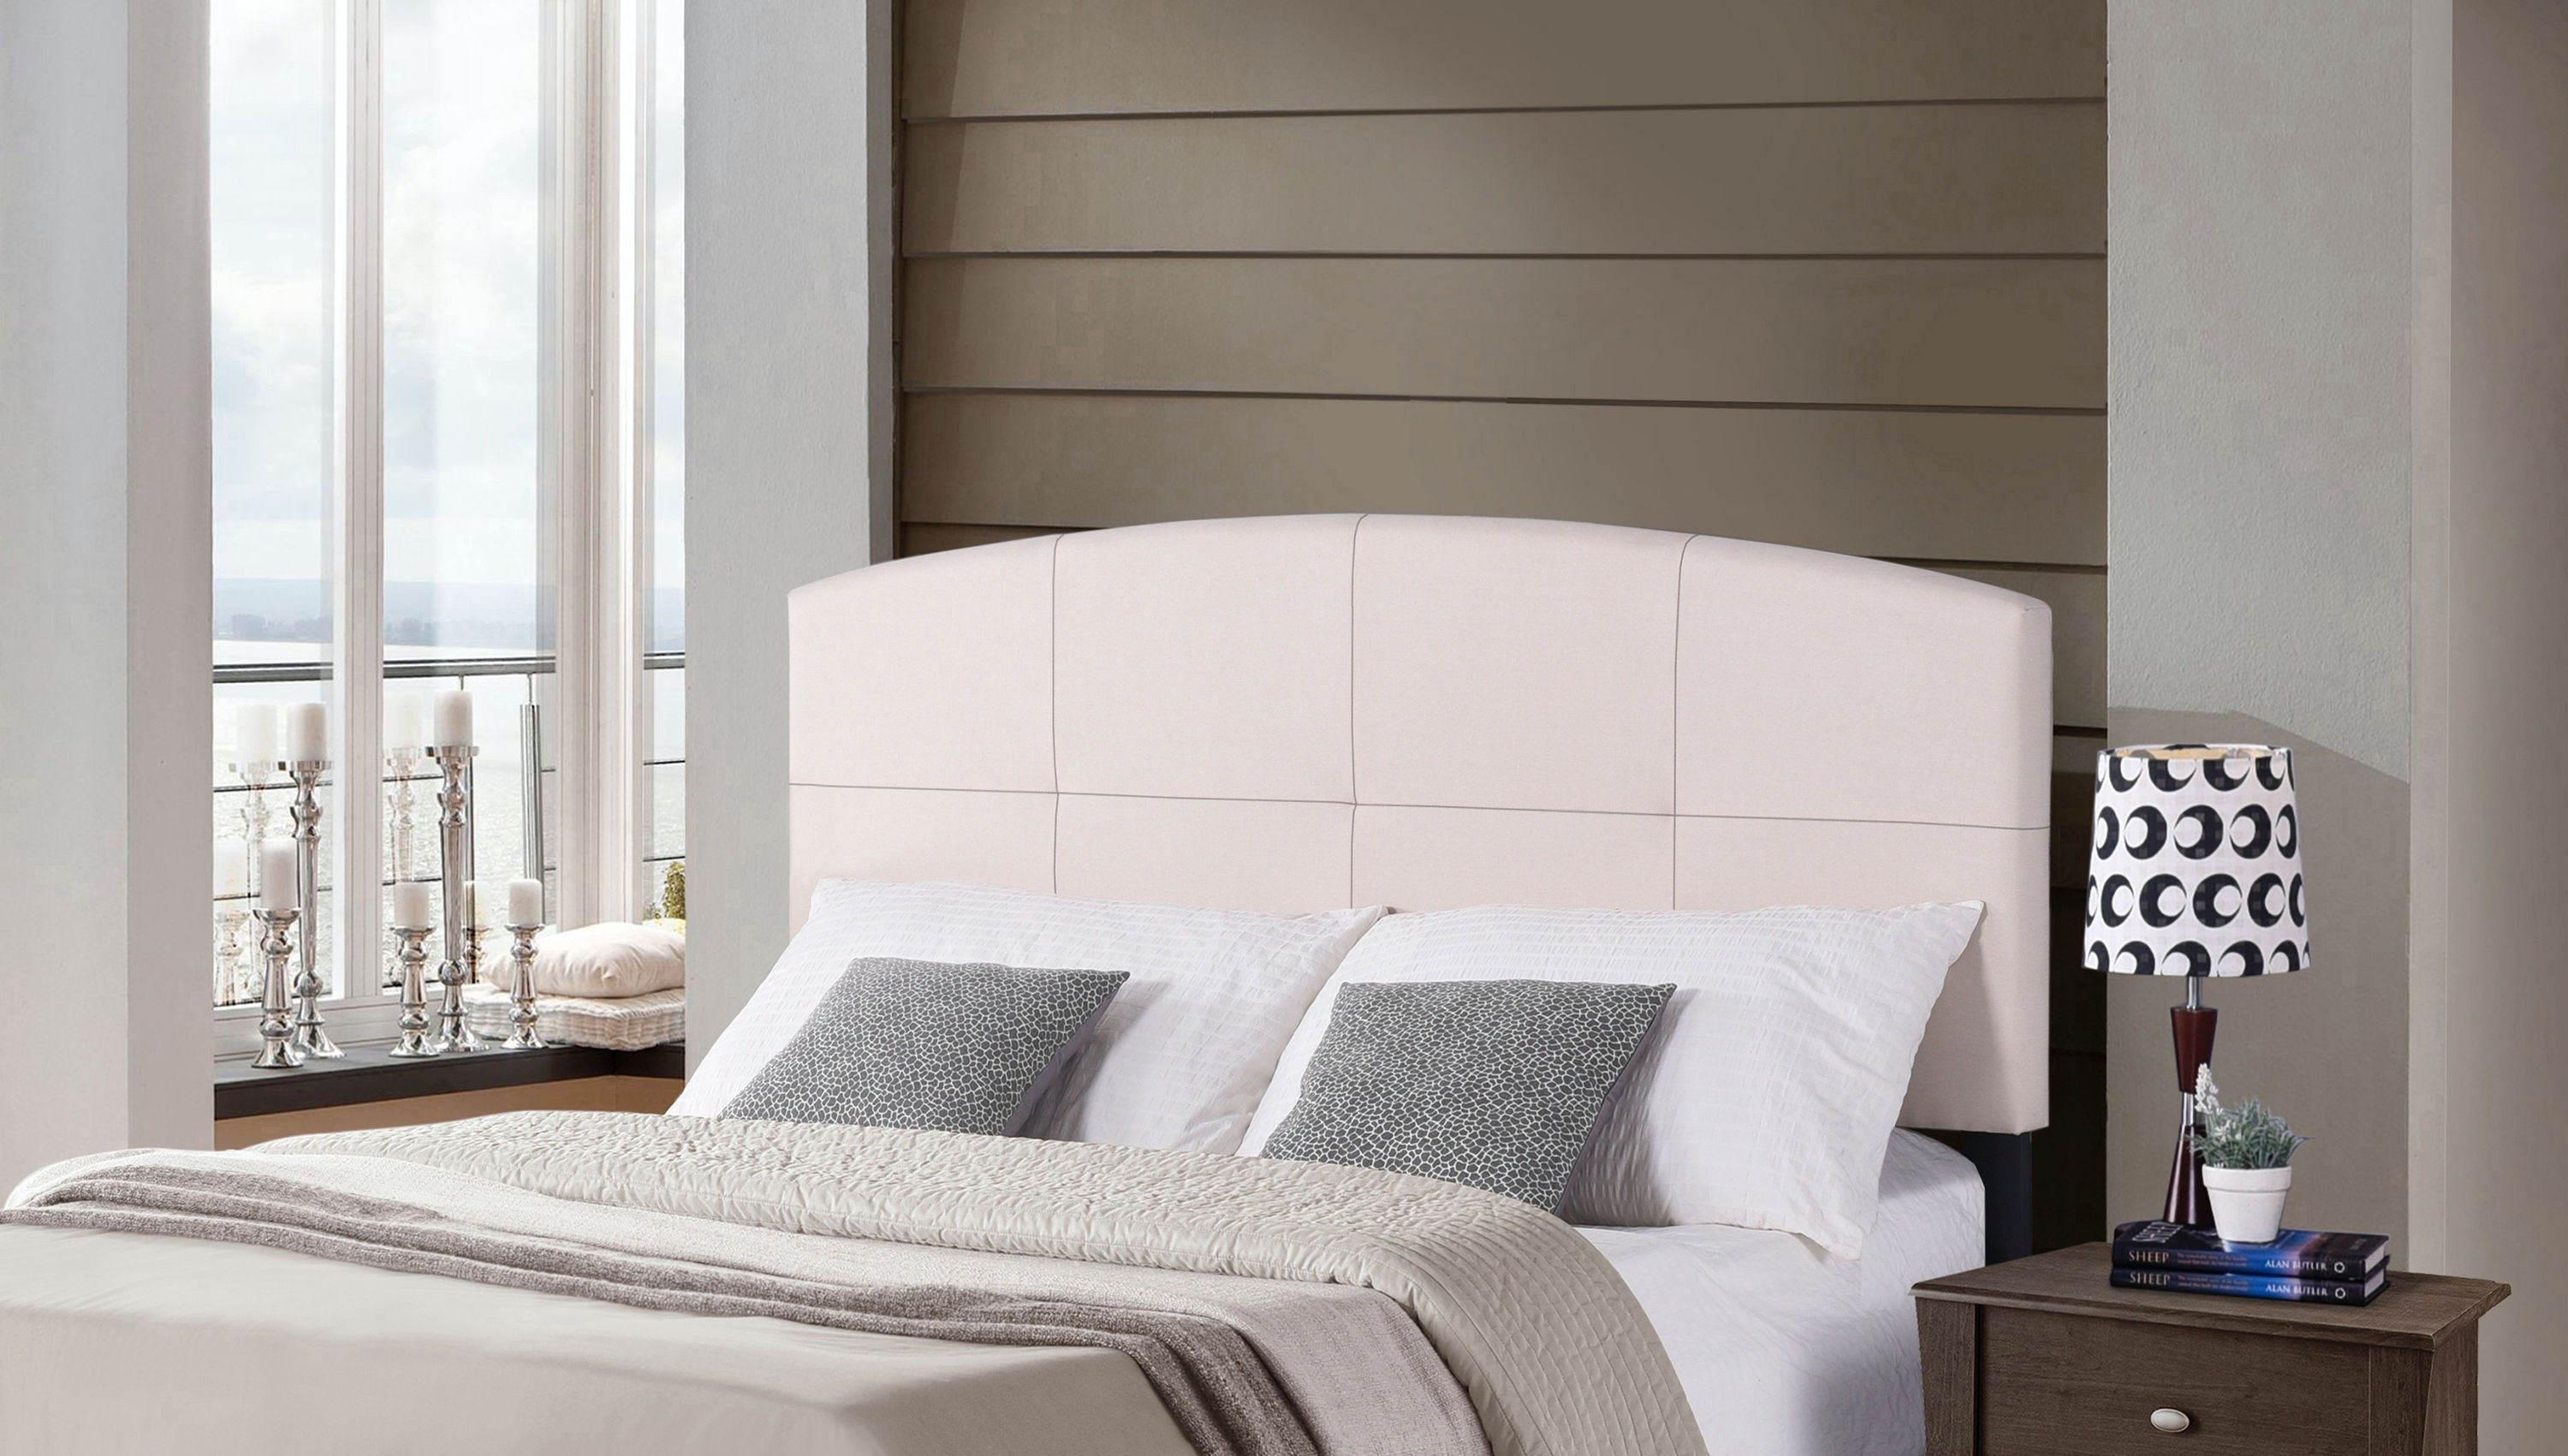 Superbe Hillsdale Furniture Bedroom Southport Headboard   King 2077 670 At Patrick  Furniture